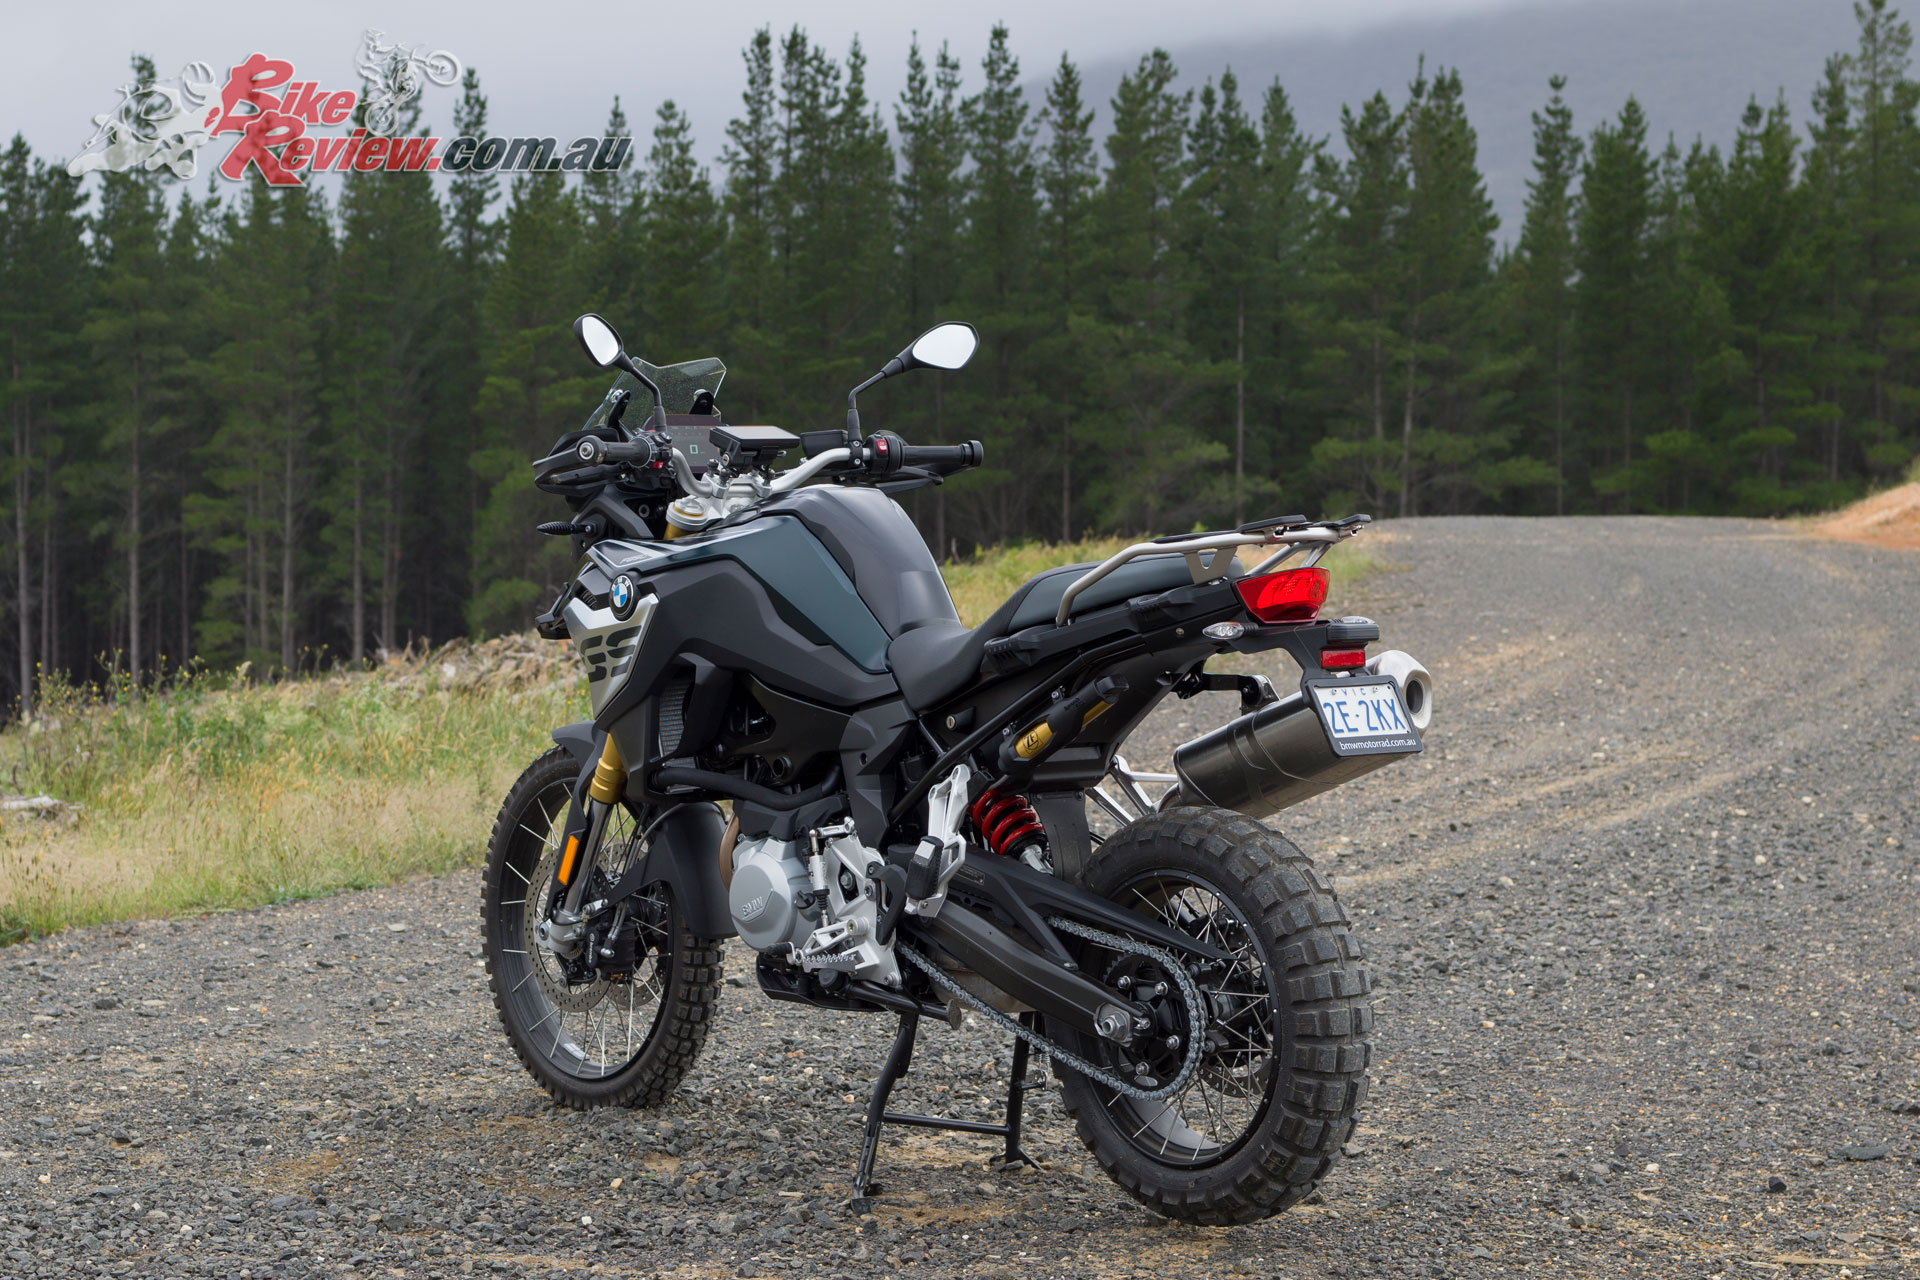 Dual-sport geometry makes some small compromises to handling at the extremes